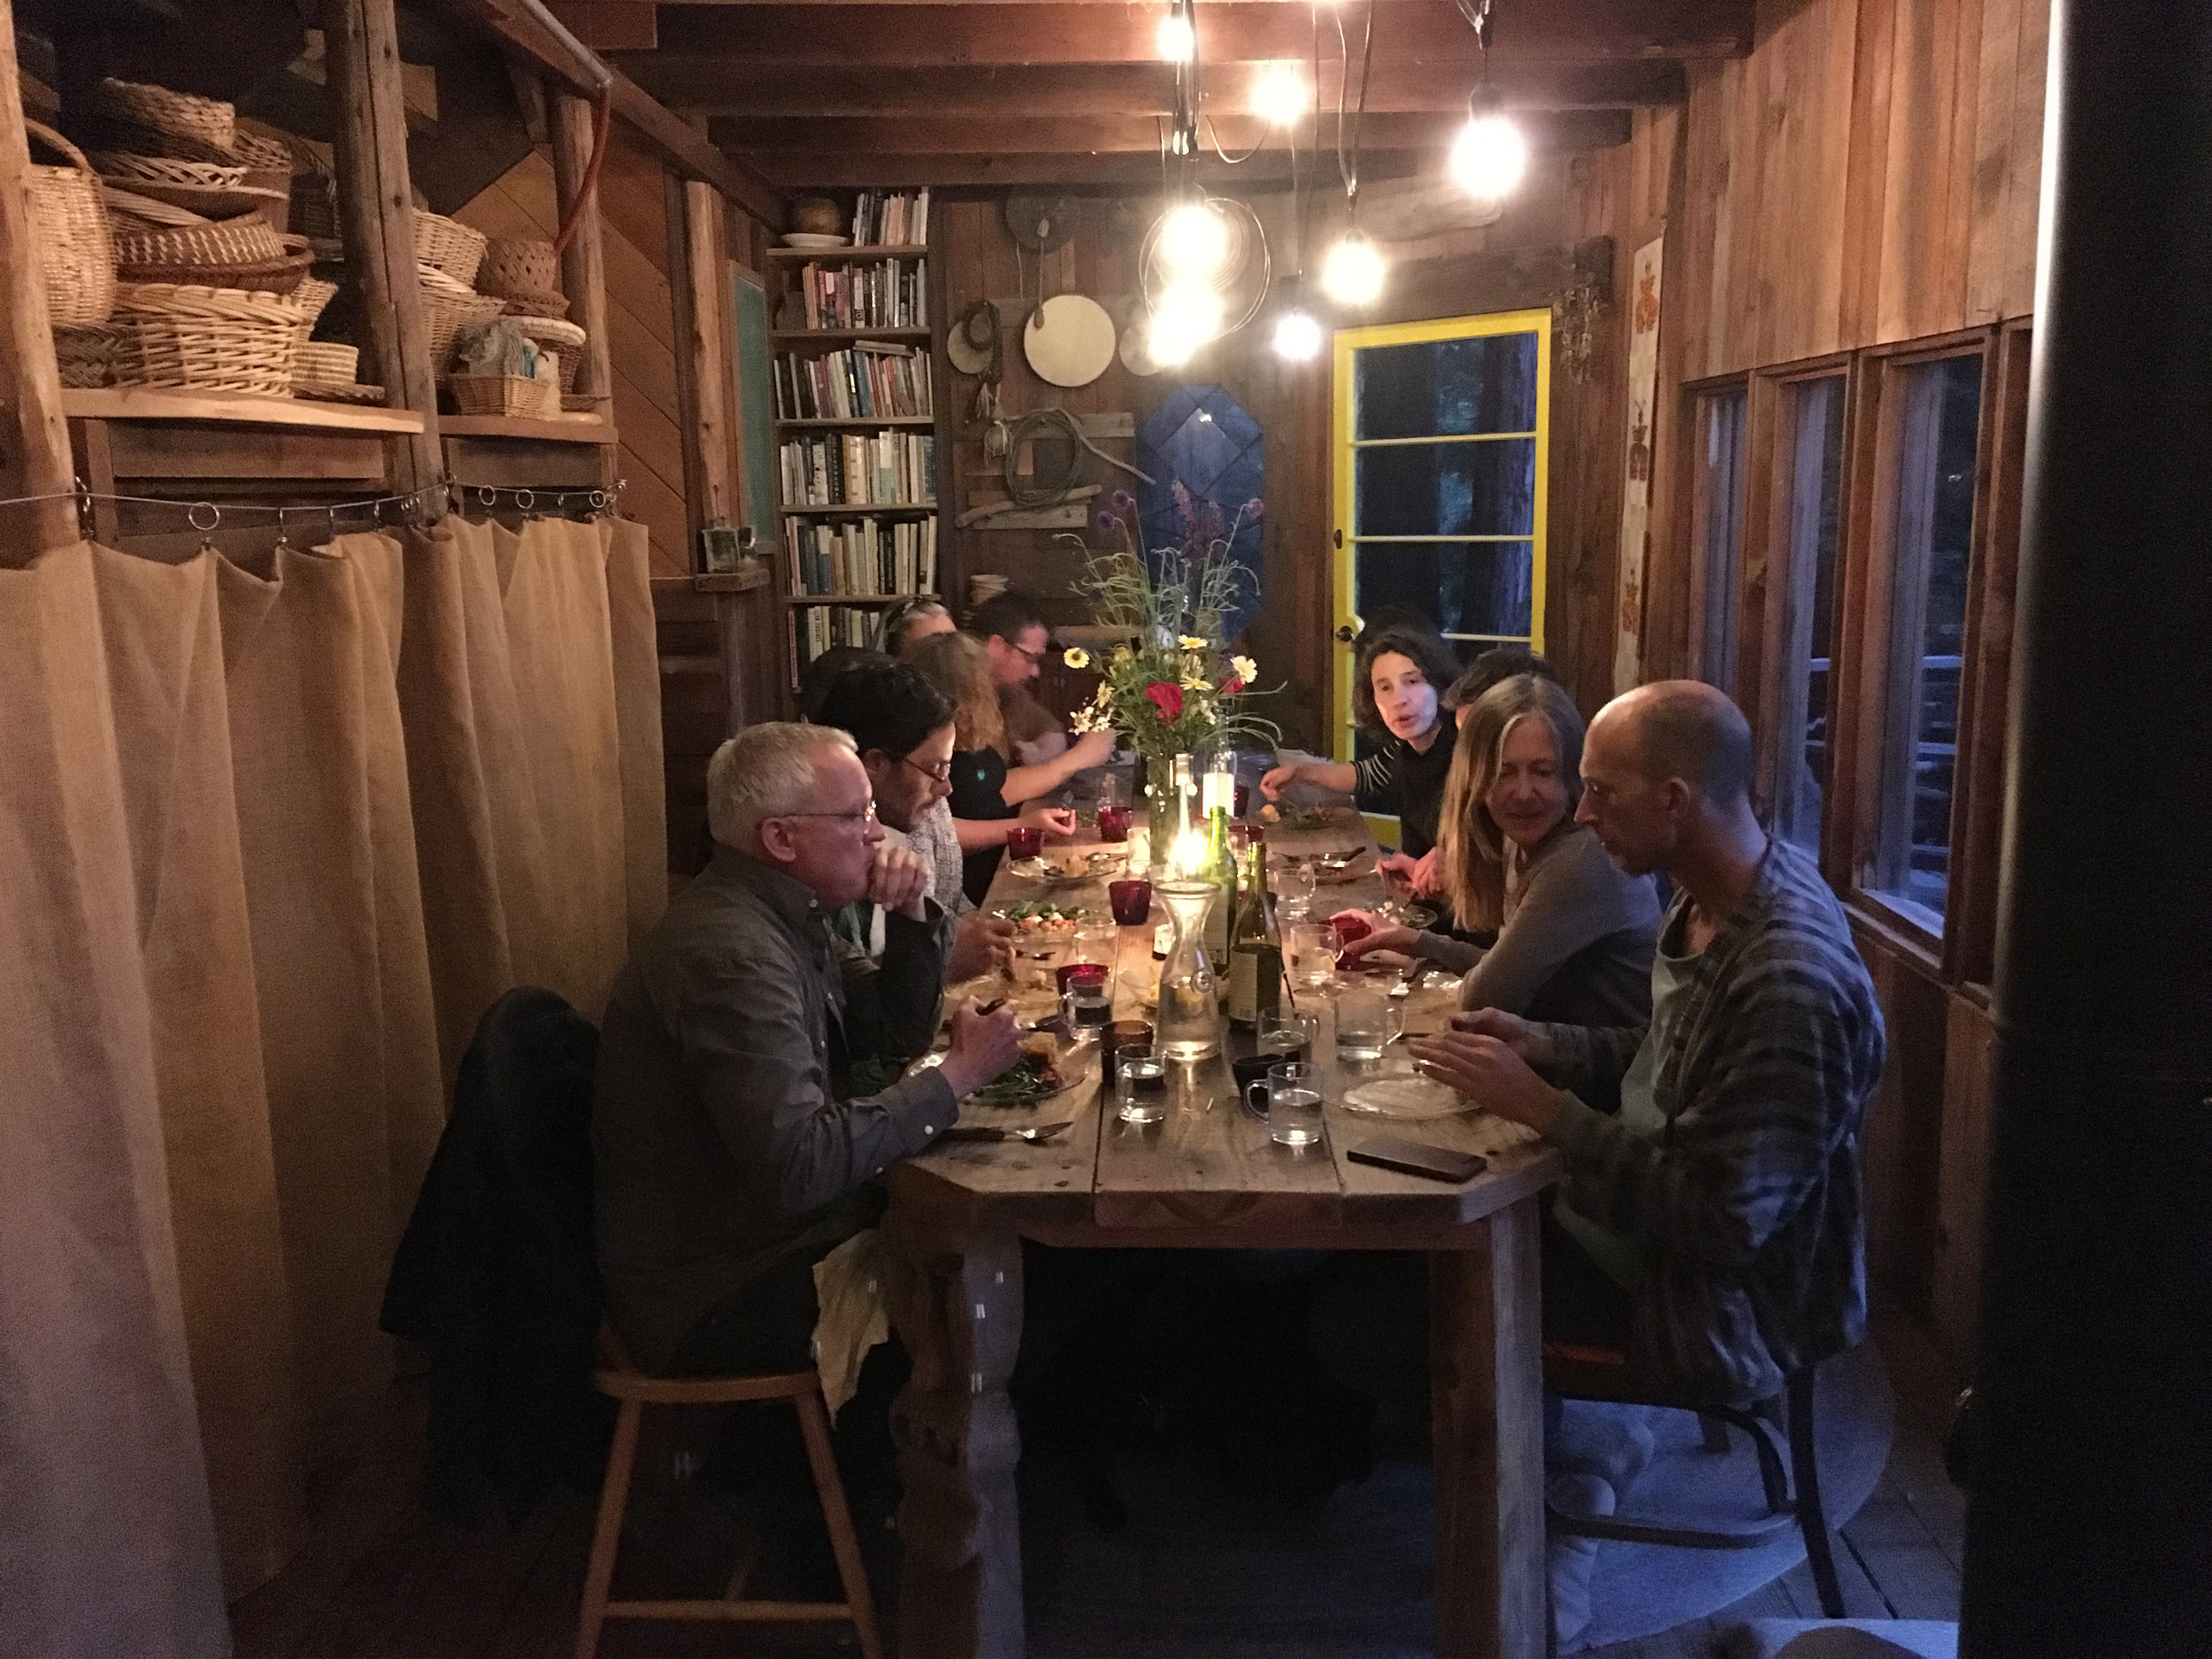 Dinner with participants and Fritz Haeg in Dawn Cabin, the communal locus of Salmon Creek Farm, June 8, 2018.